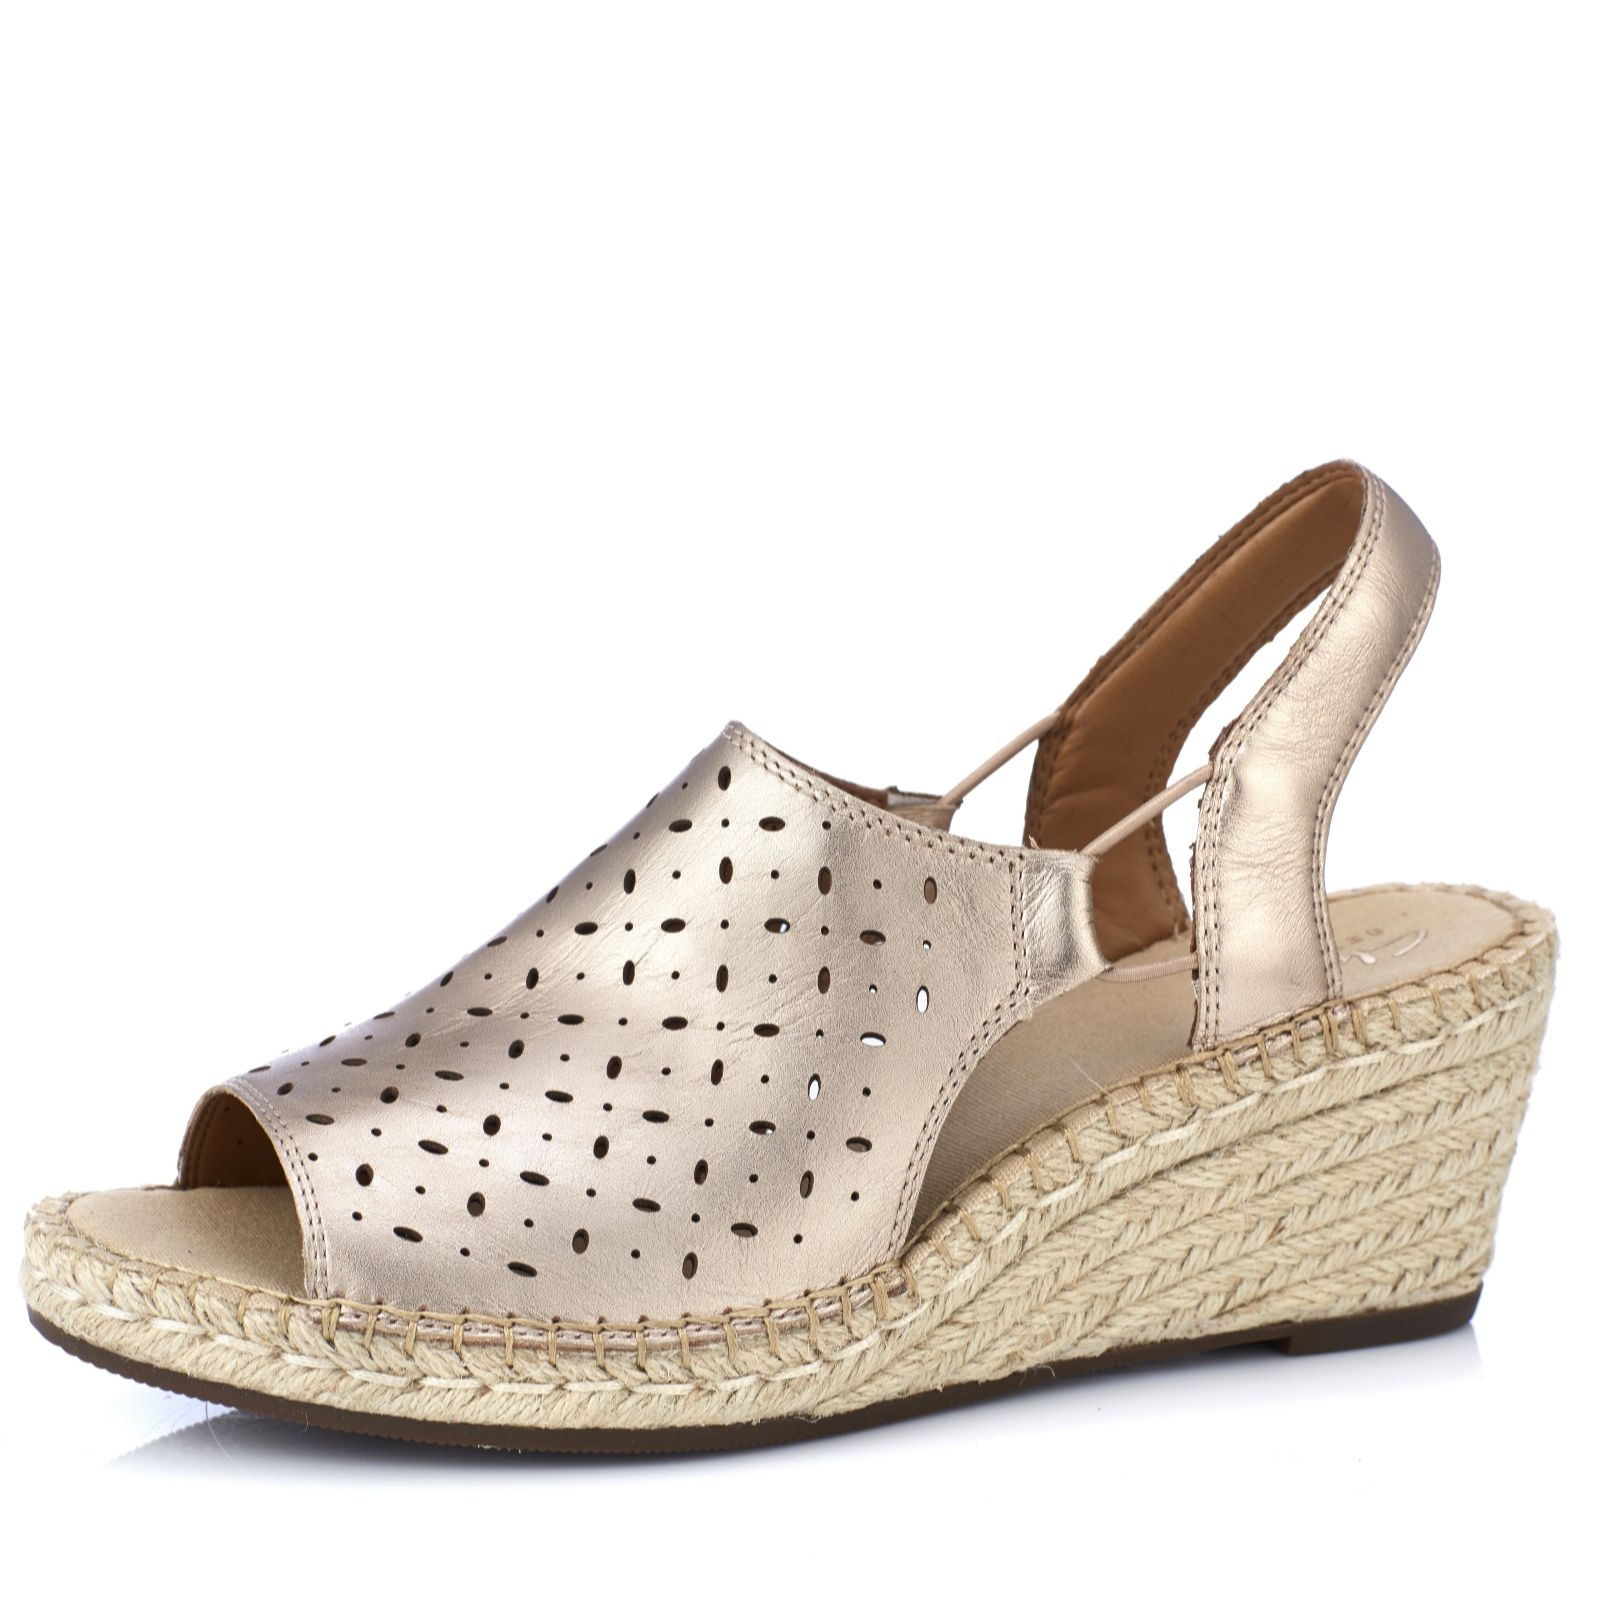 c11e0dd84b2b Clarks Artisan Petrina Gail Leather Espadrille Wedge Sandal Standard Fit -  QVC UK